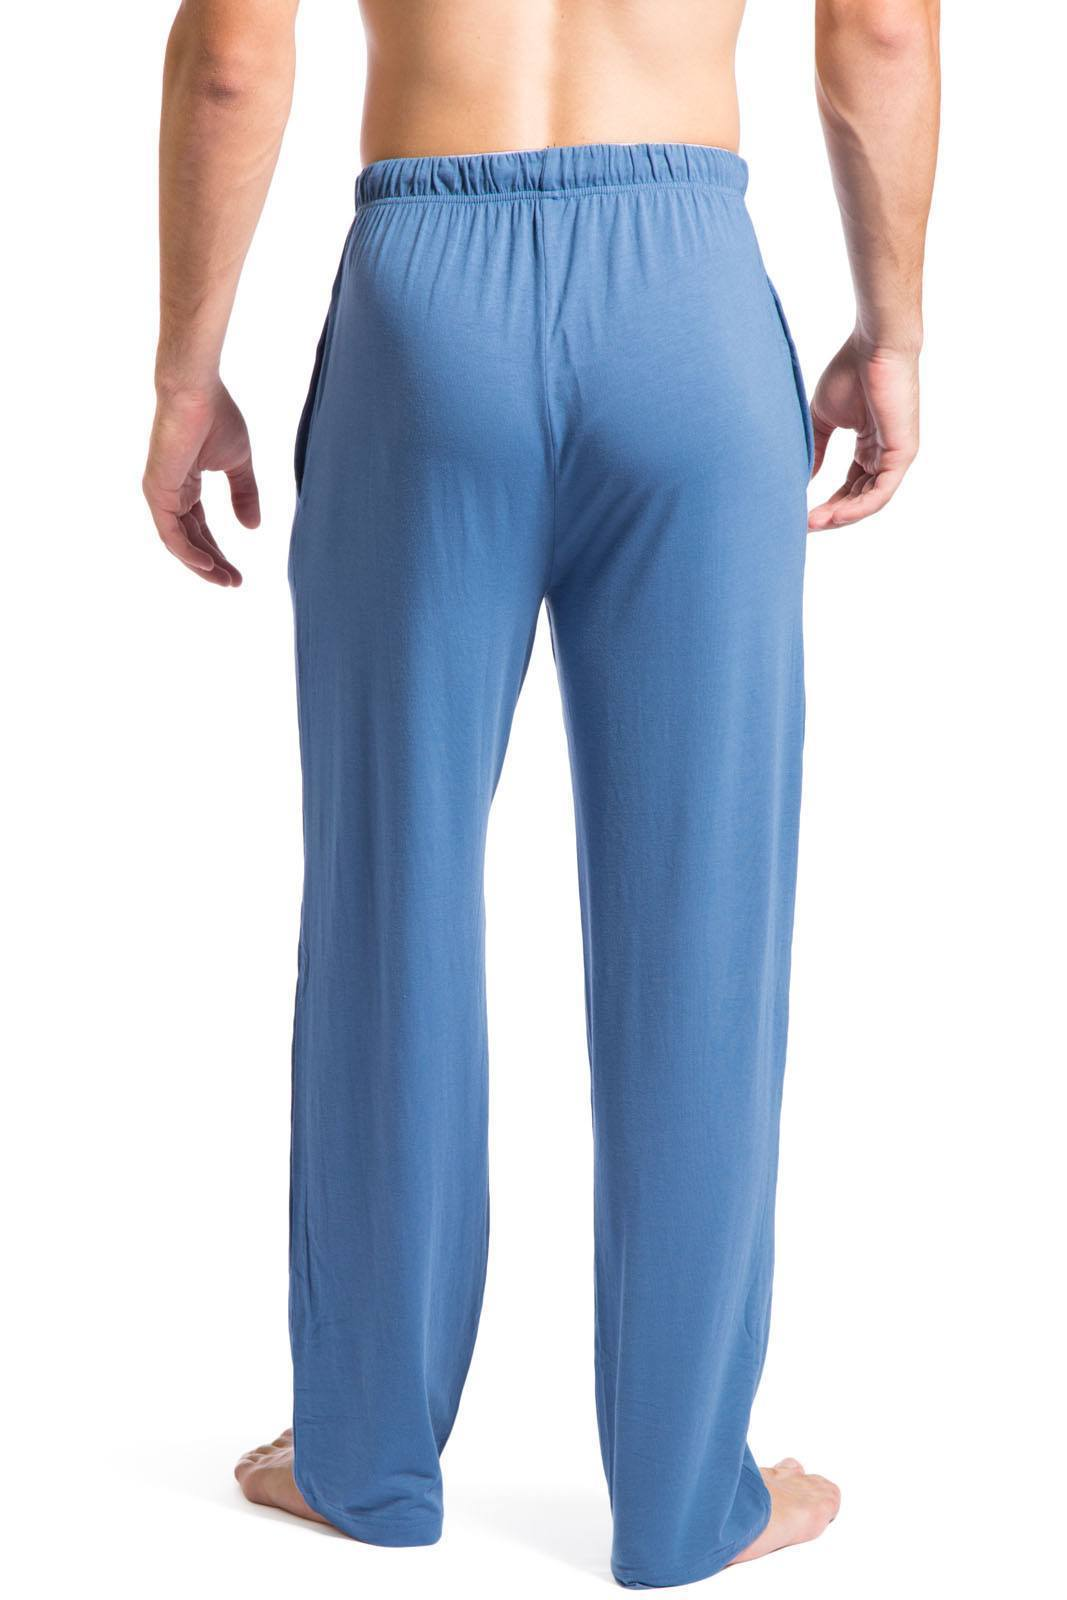 Denim Lounge Pants ($ - $): 30 of items - Shop Denim Lounge Pants from ALL your favorite stores & find HUGE SAVINGS up to 80% off Denim Lounge Pants, including GREAT DEALS like Your Old Worn Out Favorite Jeans Lounge Pants ($).